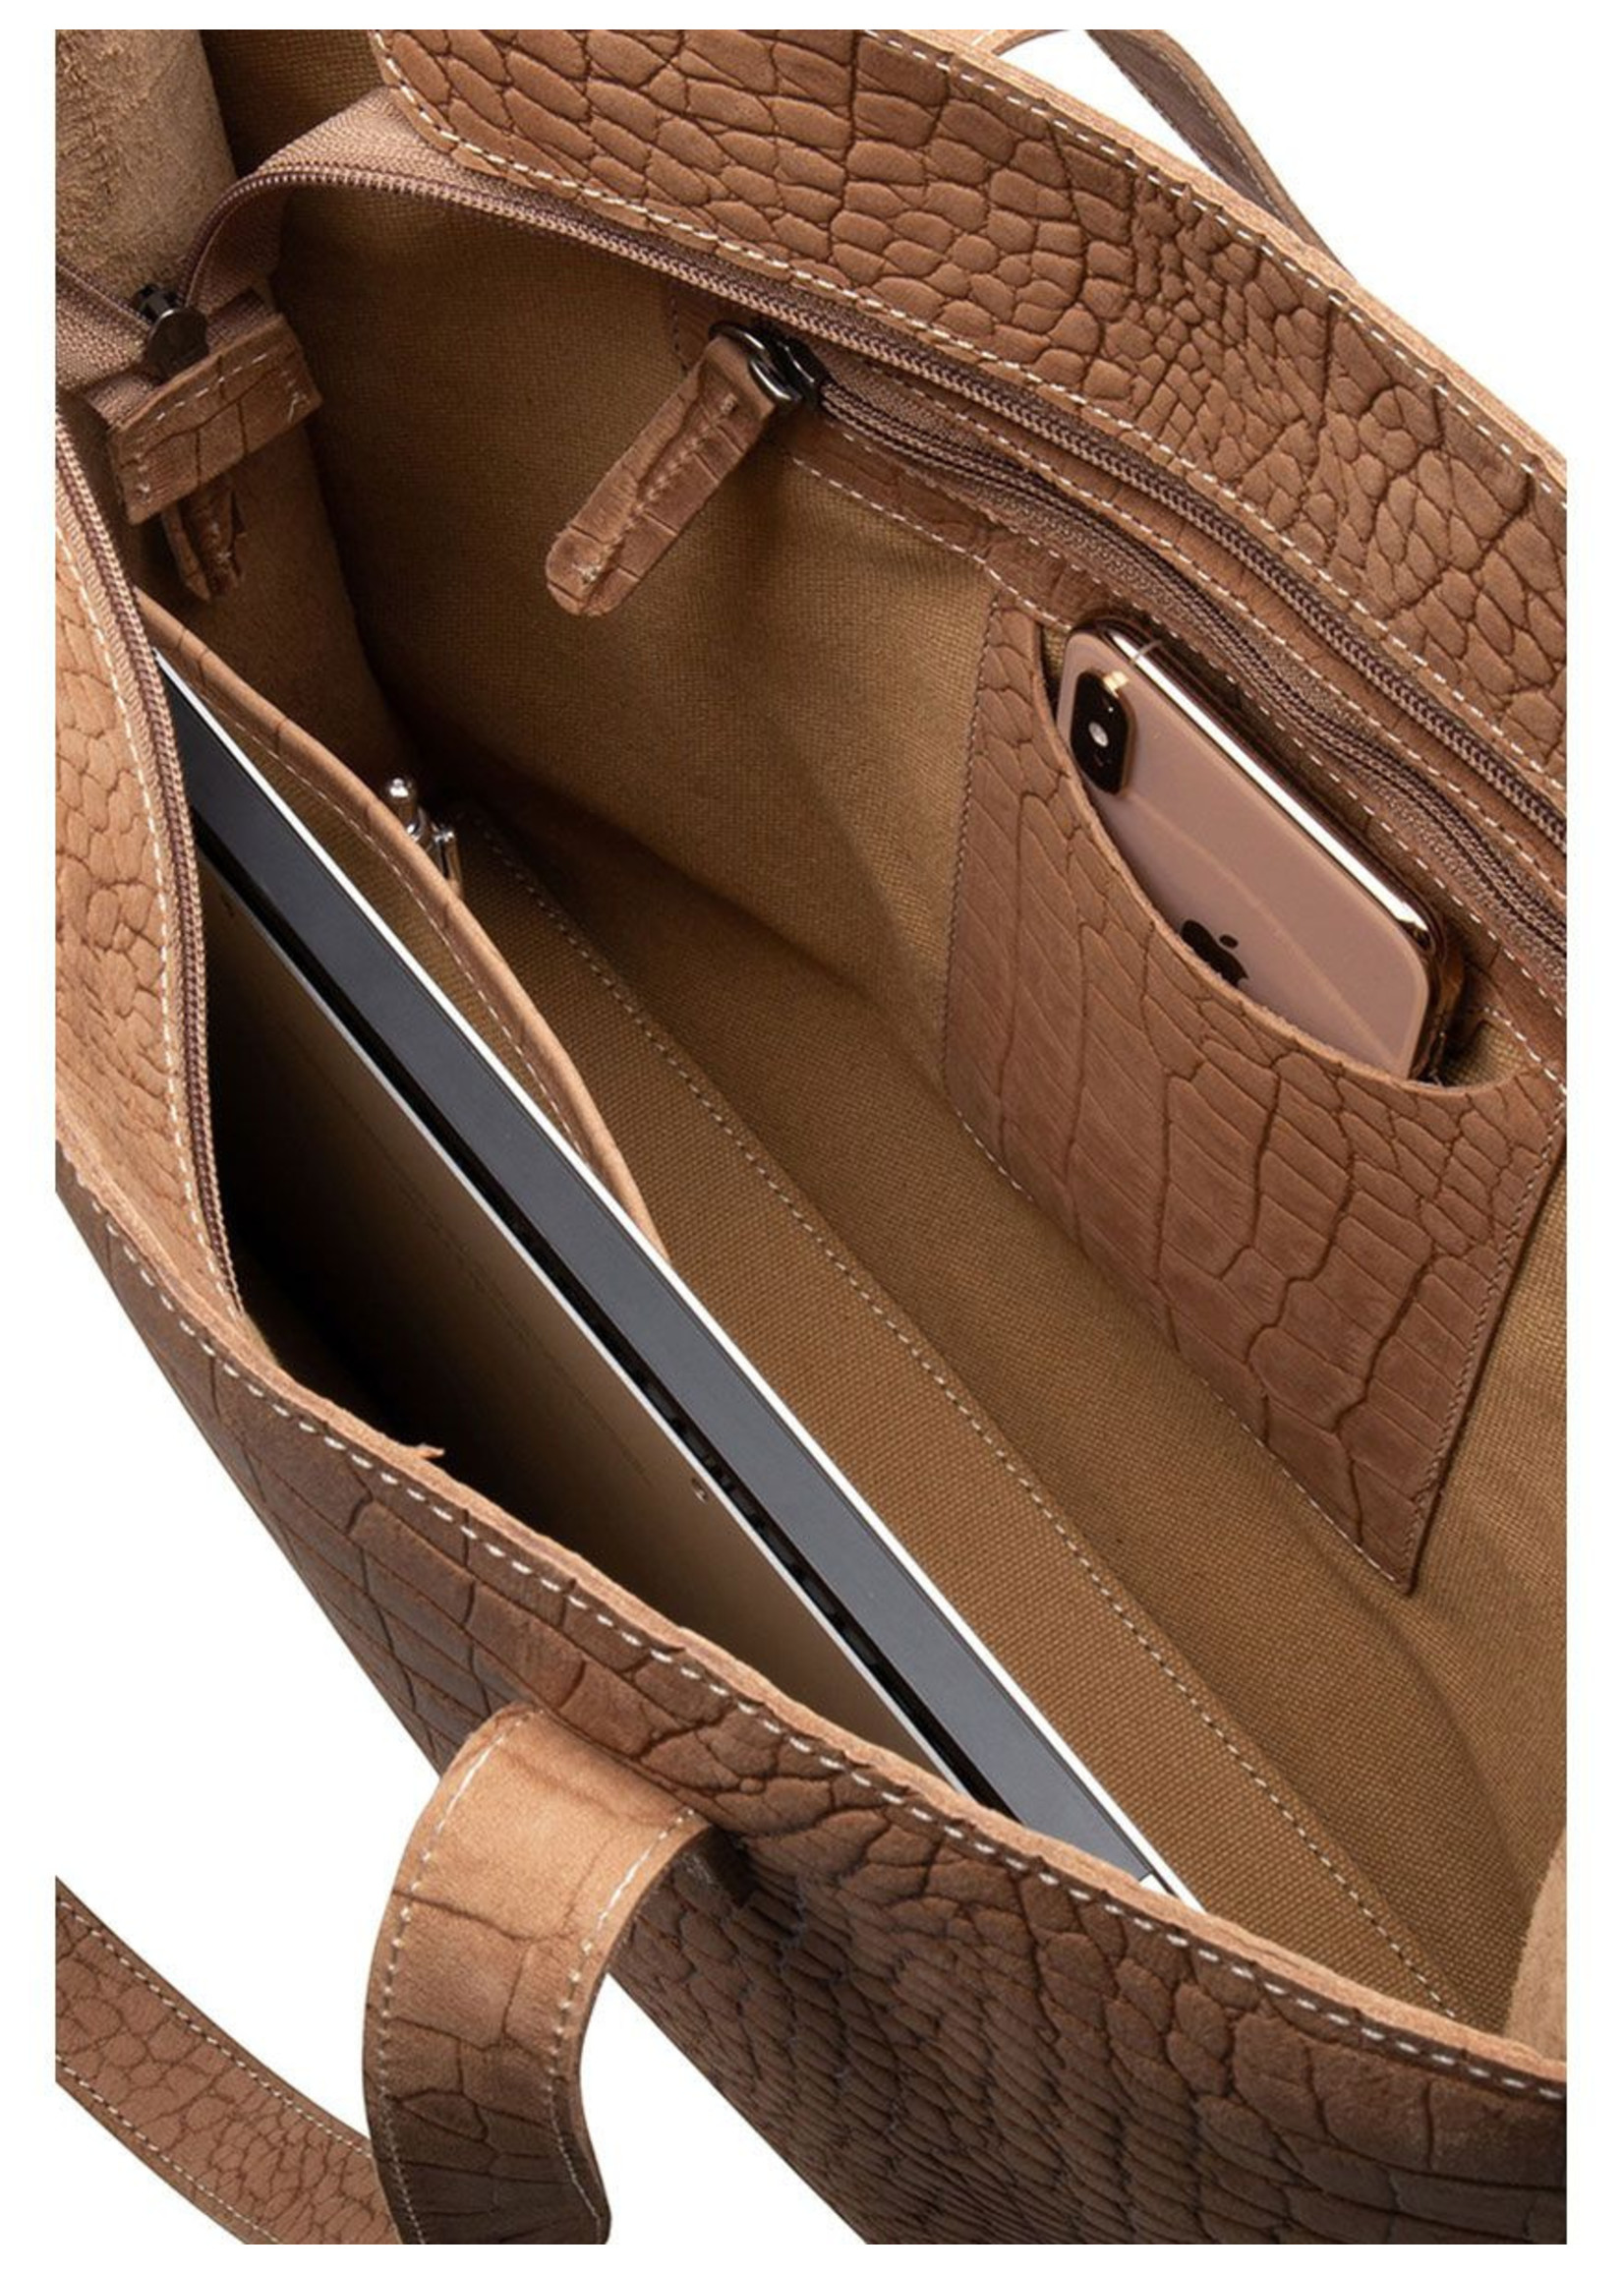 Chabo Bags Worker Croco Madrid Laptop bag Camel